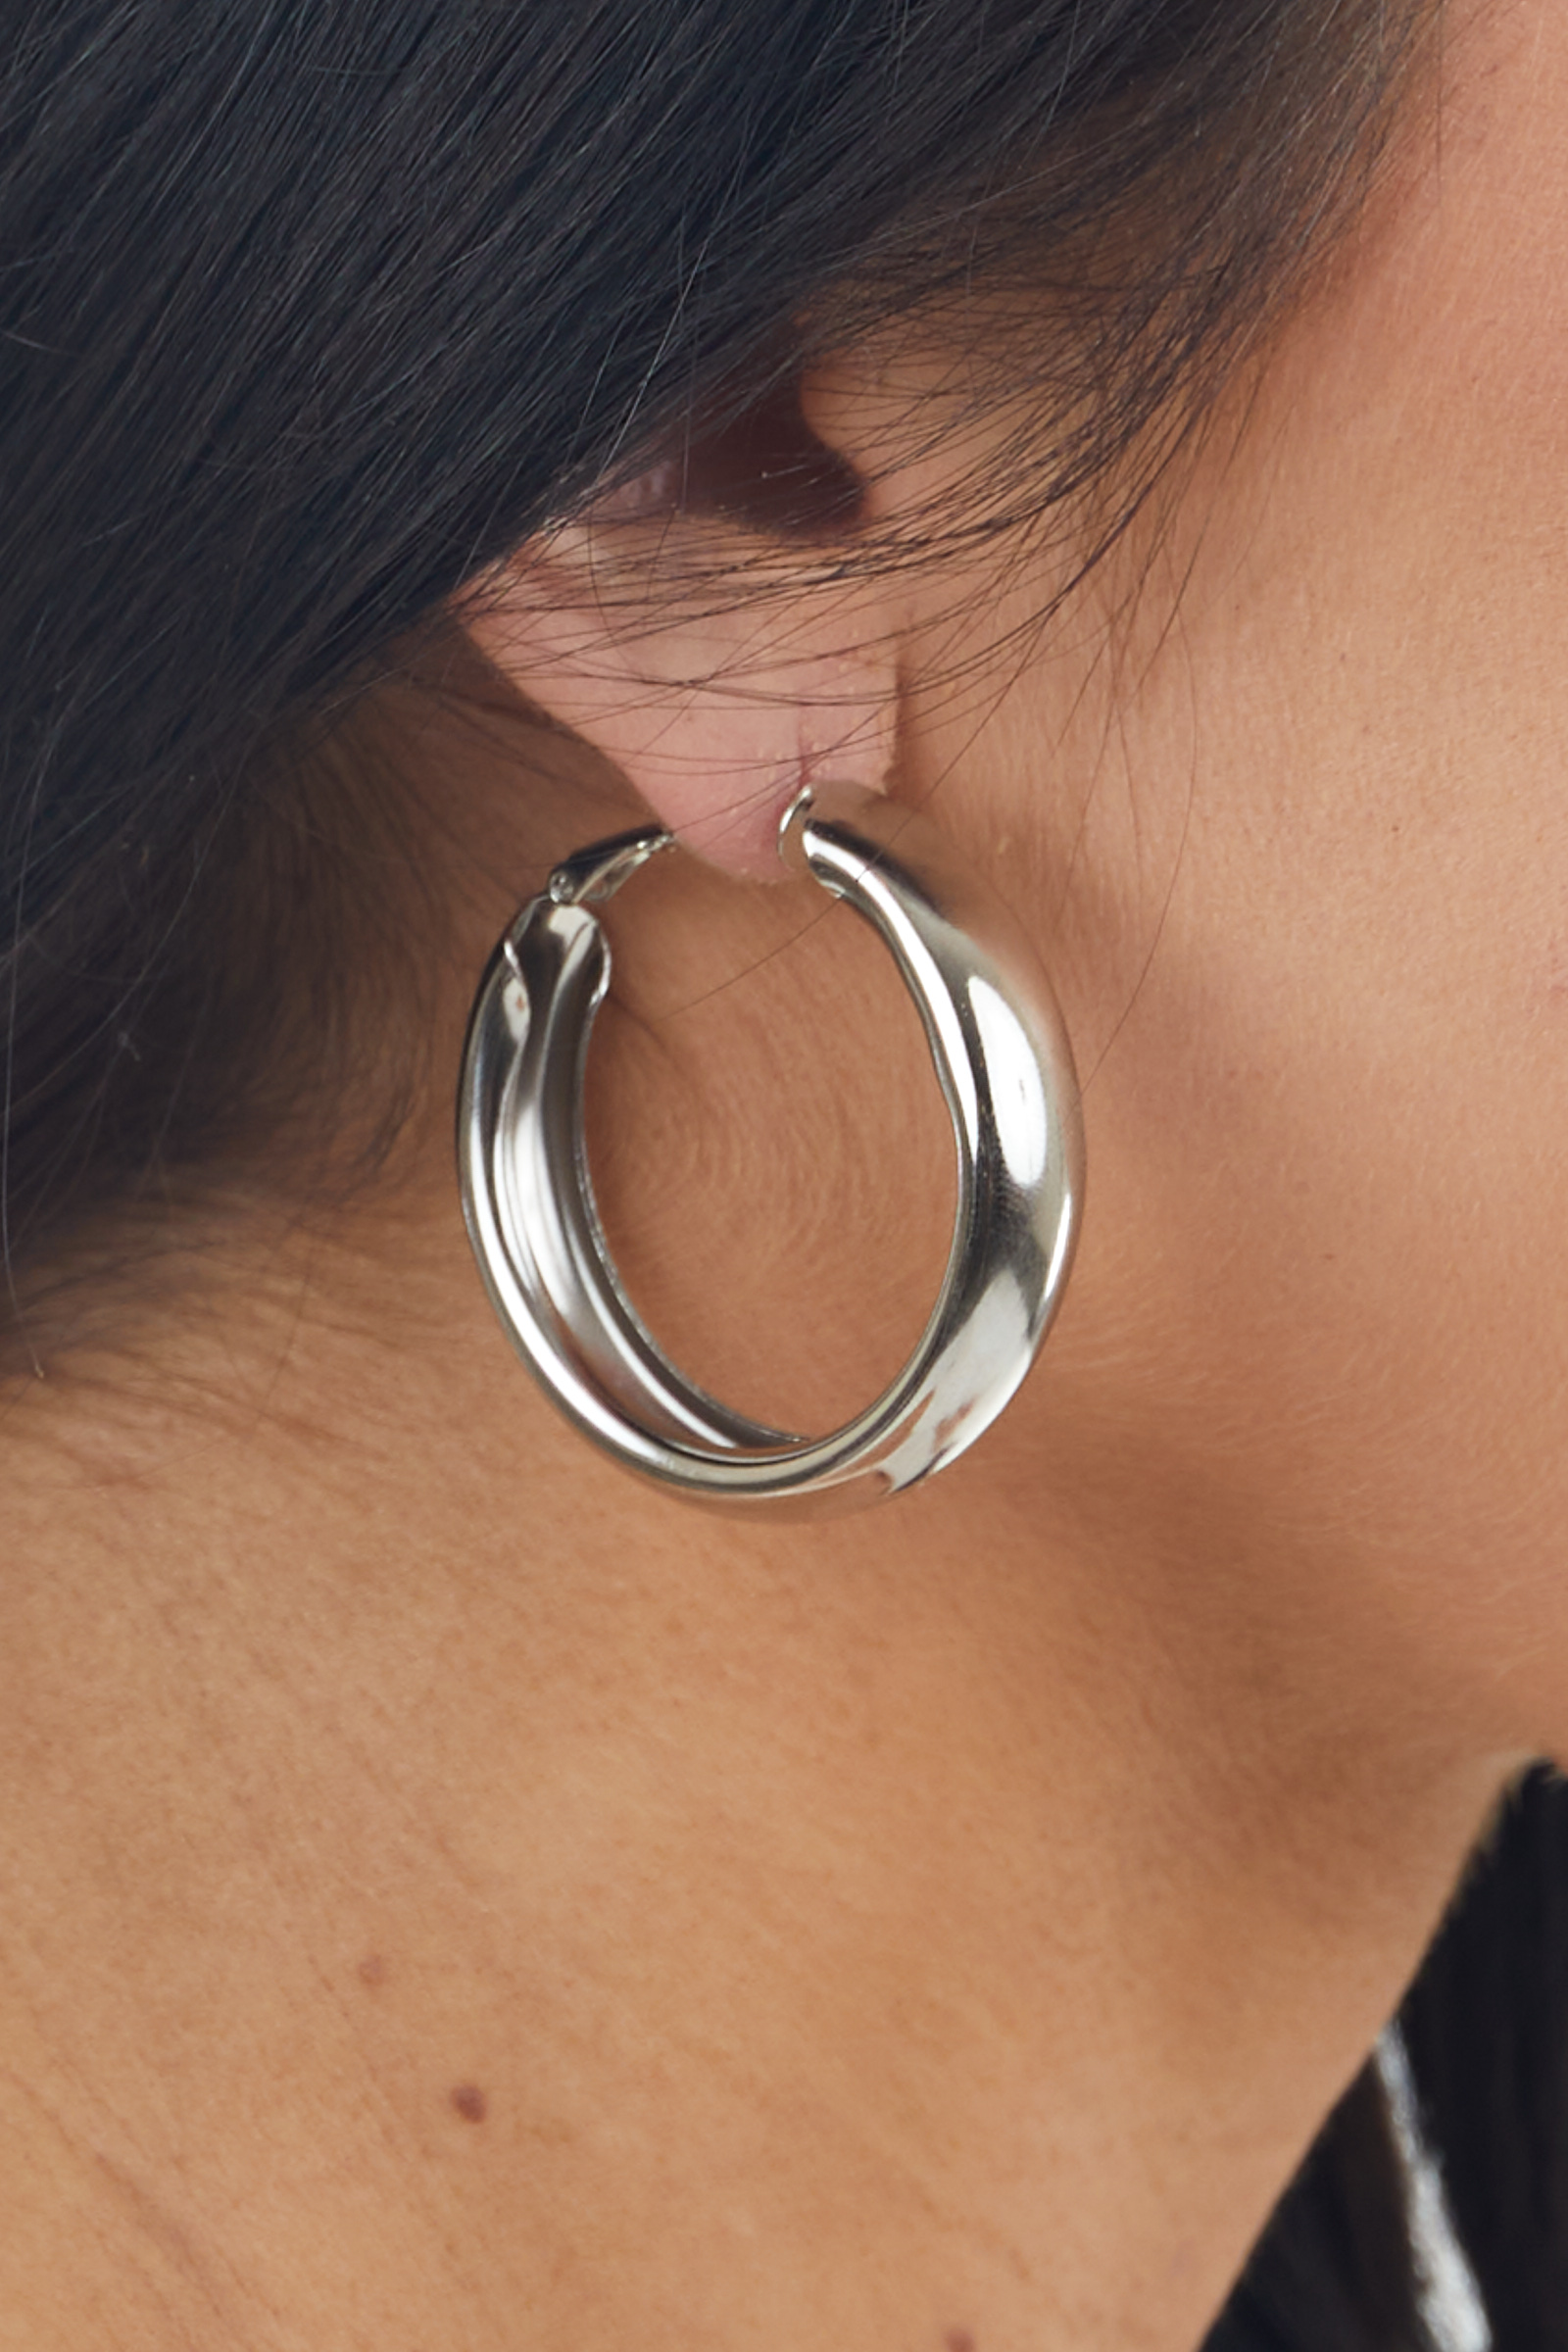 Shiny Silver Metallic Thick Hoop Earrings with Wire Closure